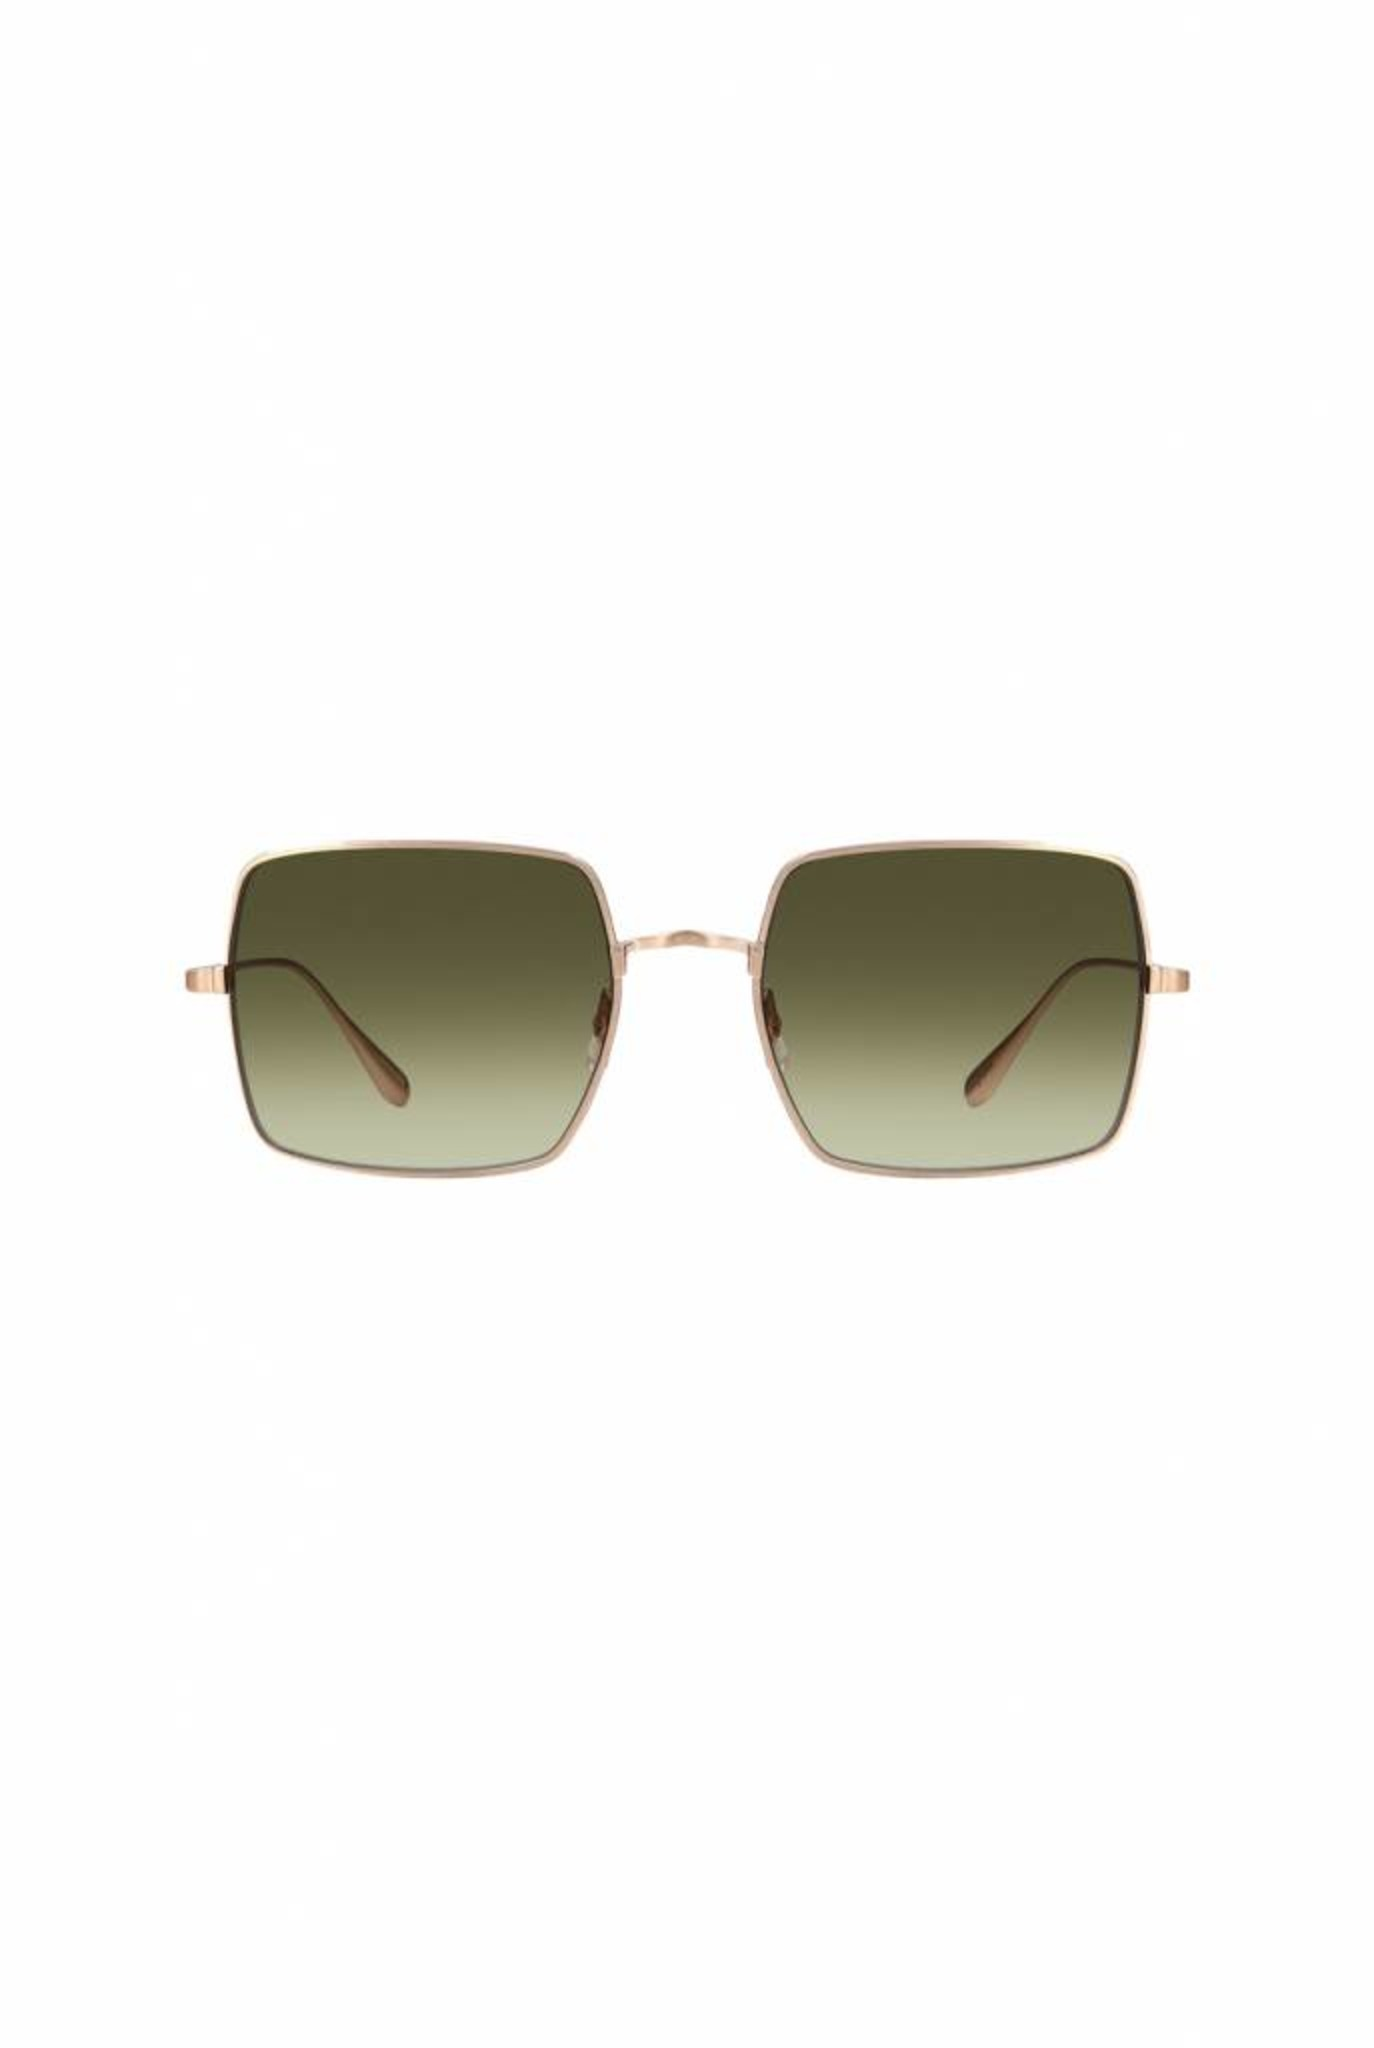 Crescent sunglasses Matte gold/Semi-flat Olive Gradient